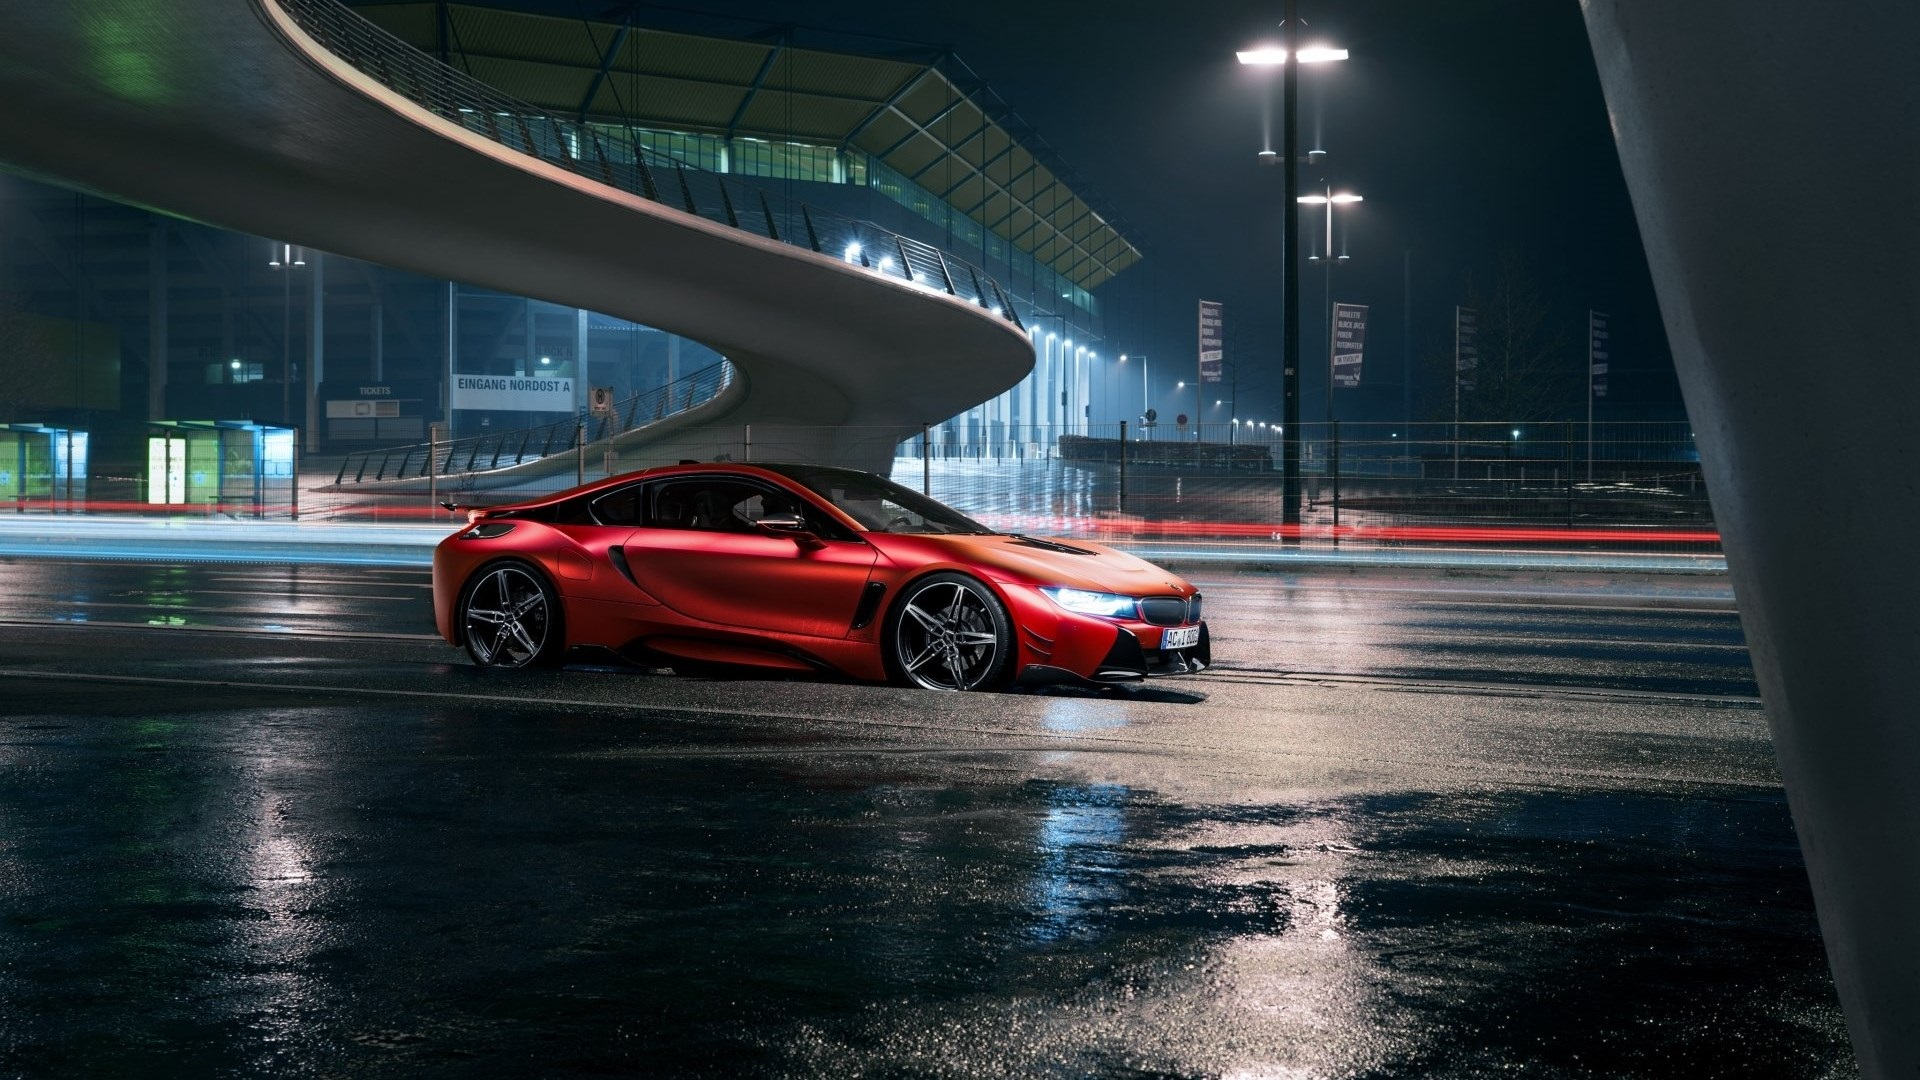 Wallpaper Red BMW Car At Night City Road 1920x1080 Full HD Picture